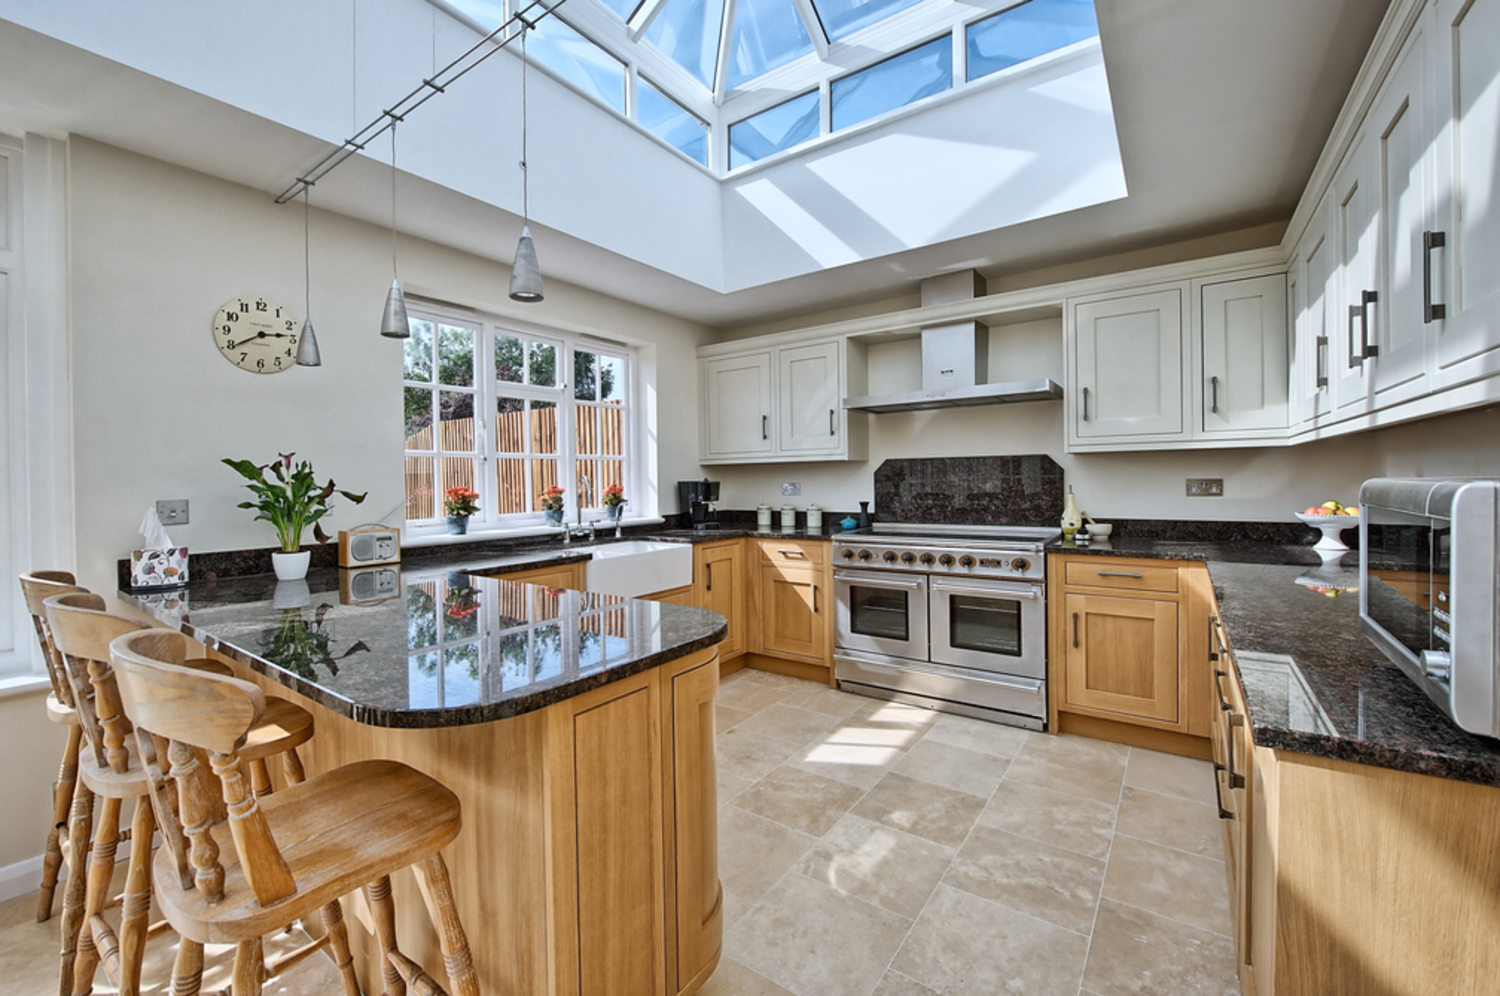 Kitchen view of a house extension by Harvey Norman Architects St Albans